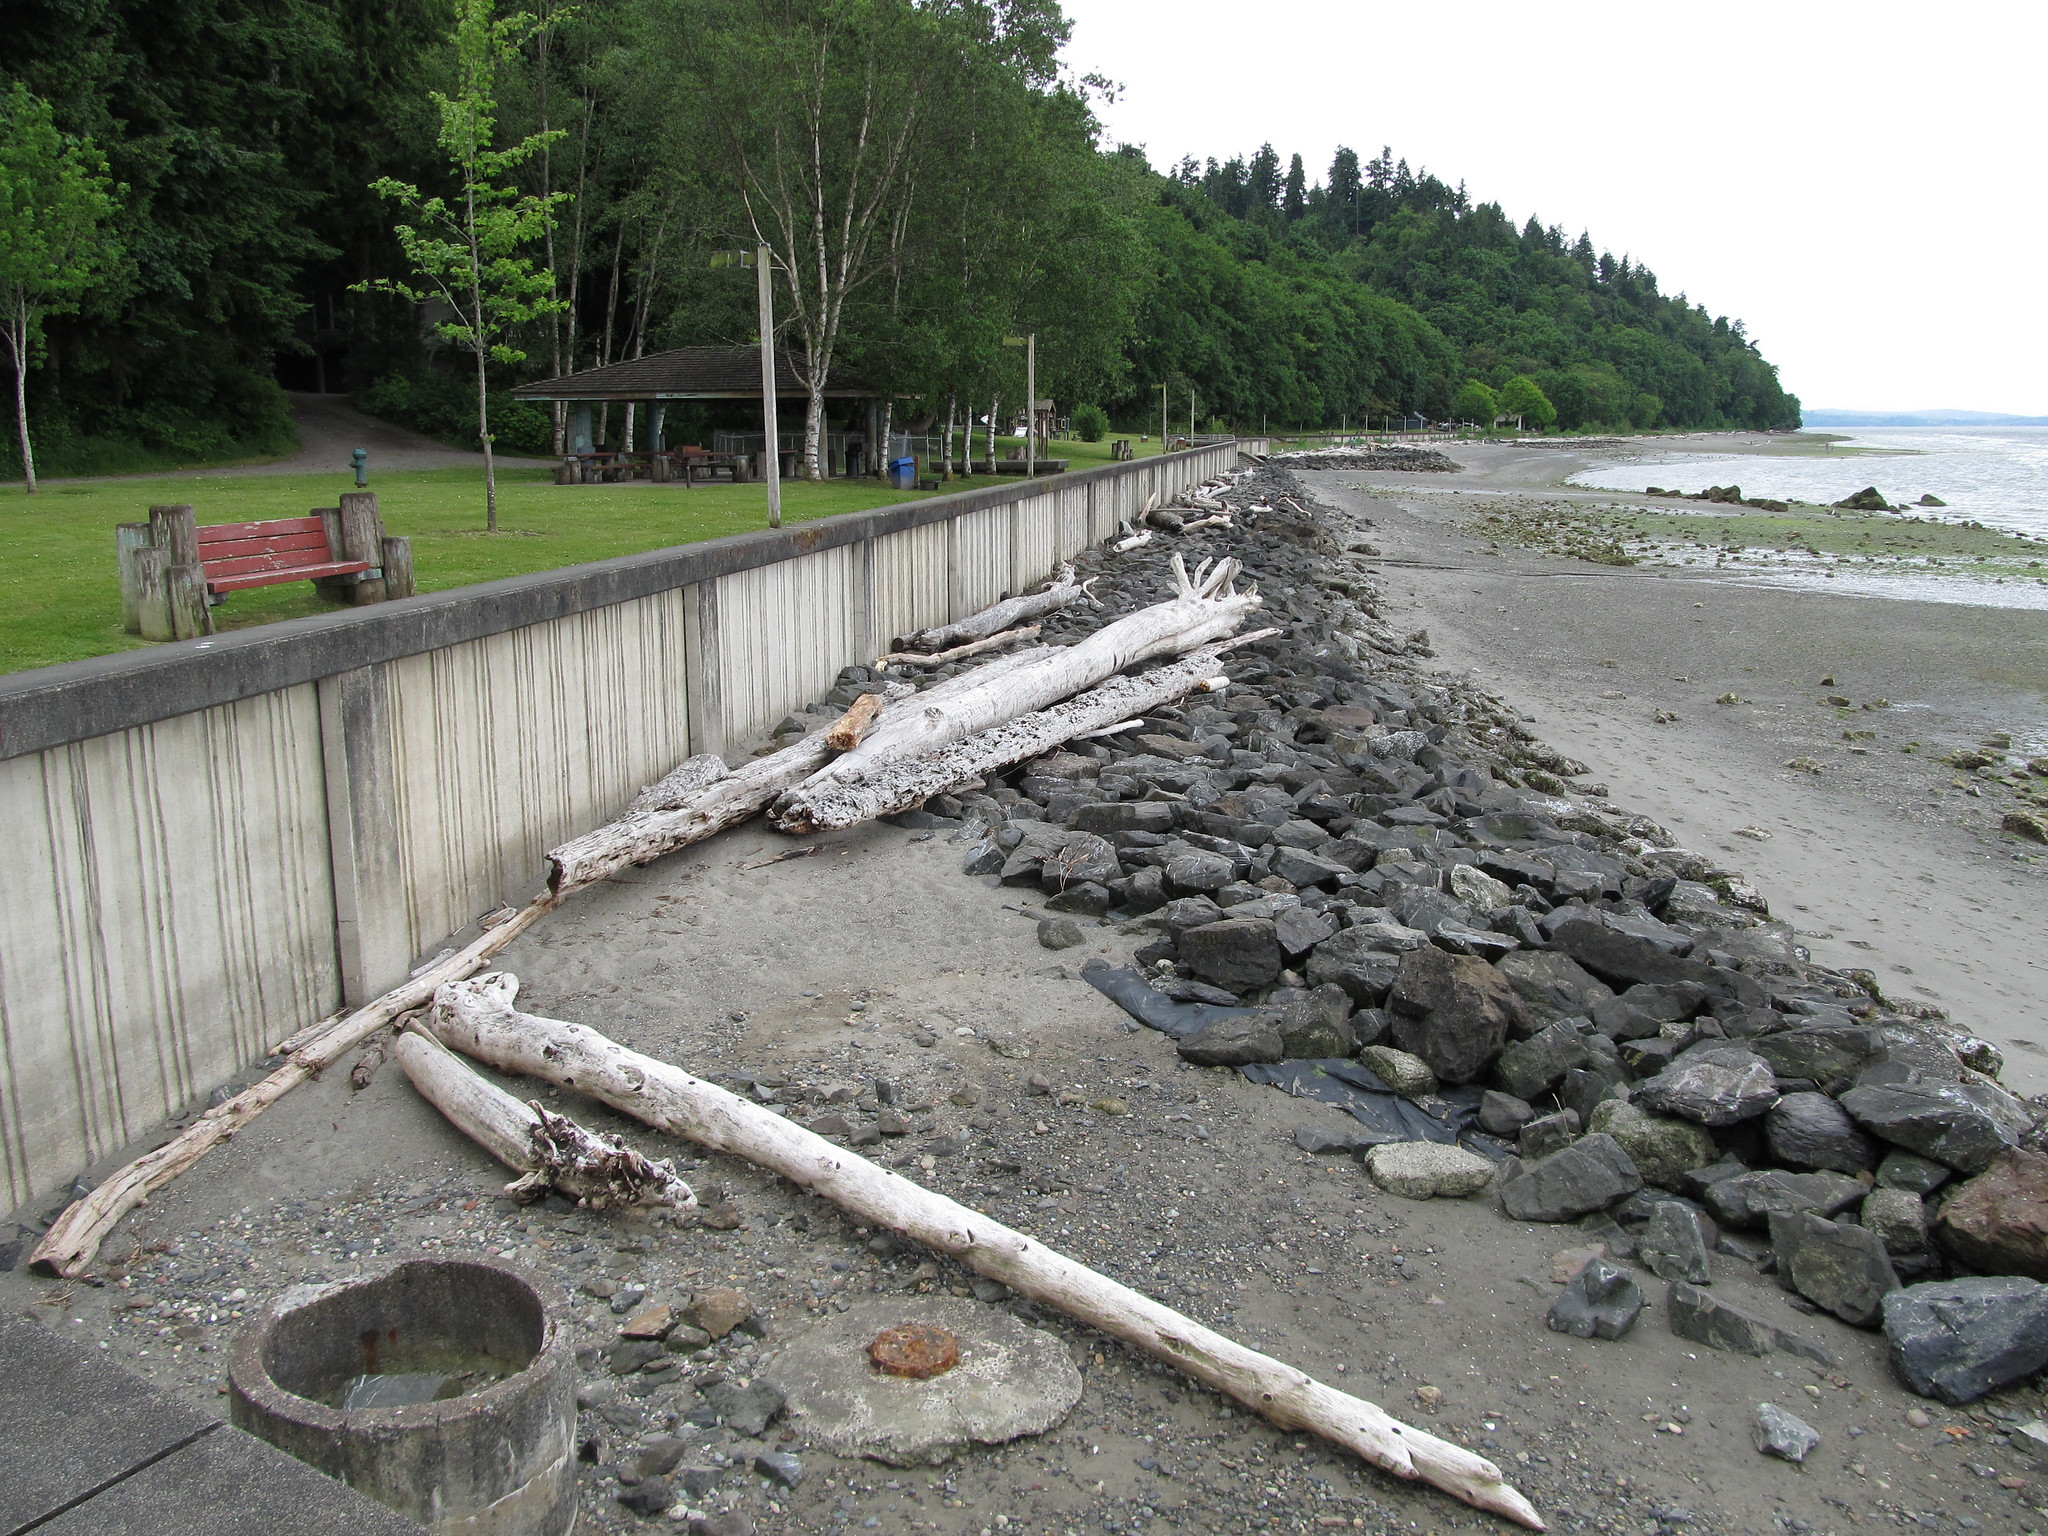 Senator: To help orcas and salmon, seawalls should be a last resort